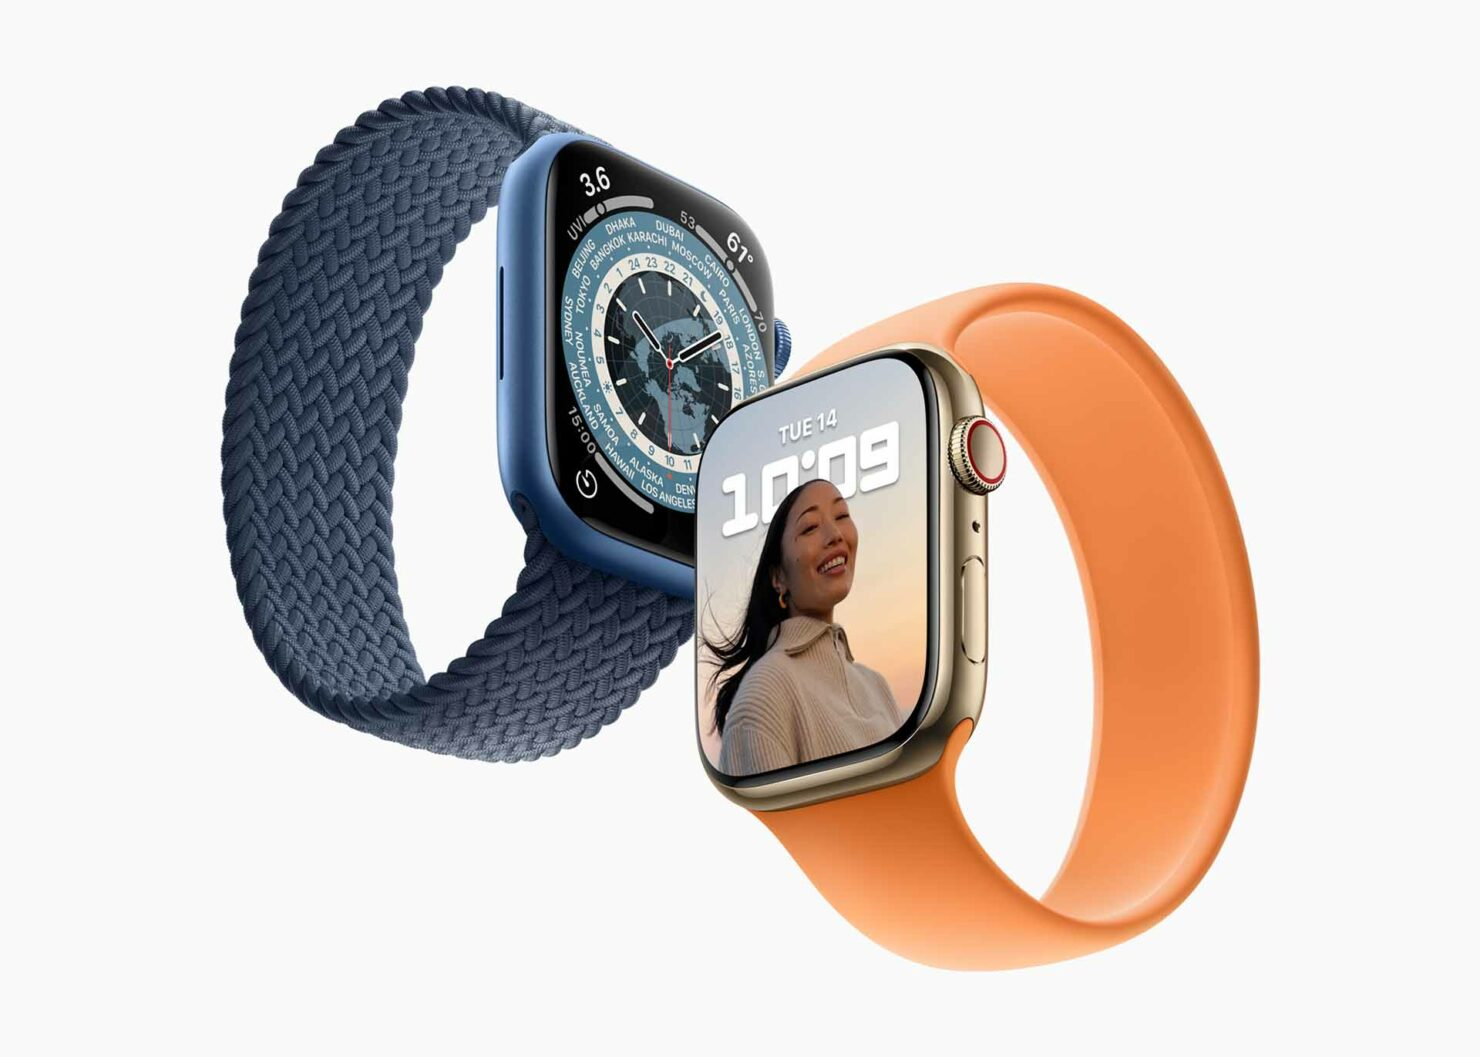 You Can Pre-Order Apple Watch Series 7 Starting Friday, October 8